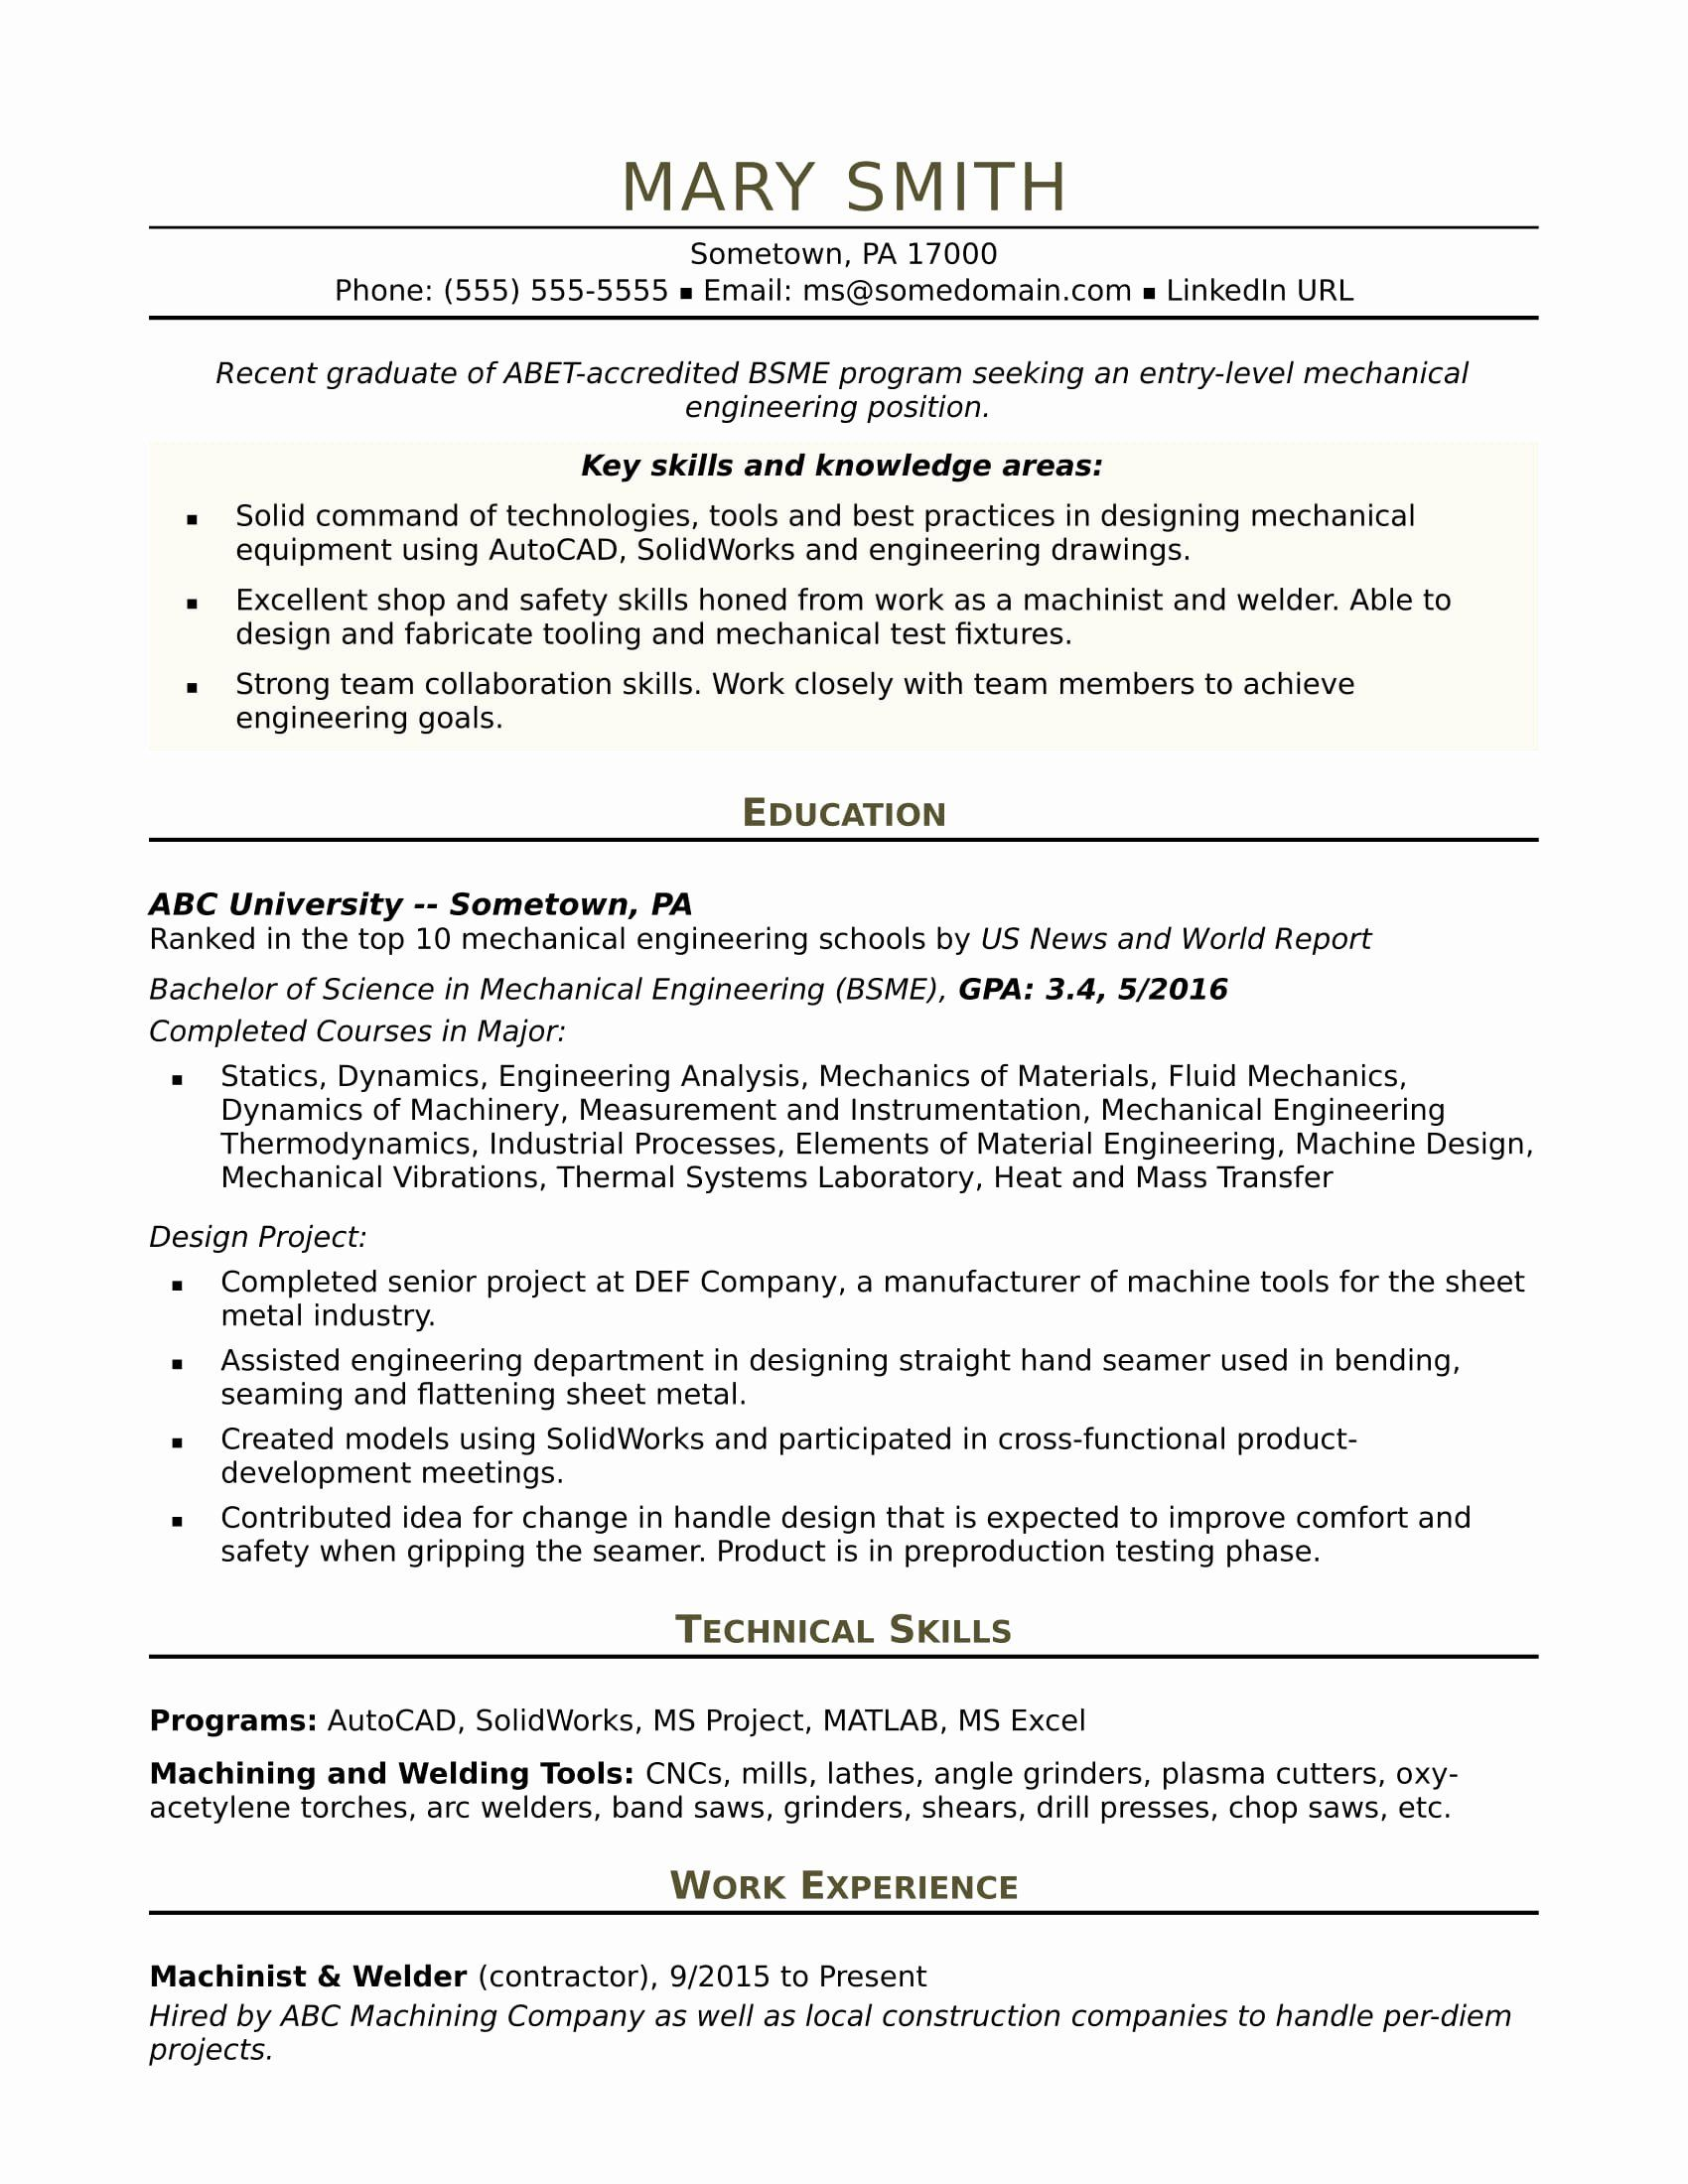 Technical Skills For Mechanical Engineer Resume Awesome Sample Resume For An Entry L In 2020 Engineering Resume Templates Mechanical Engineer Resume Engineering Resume